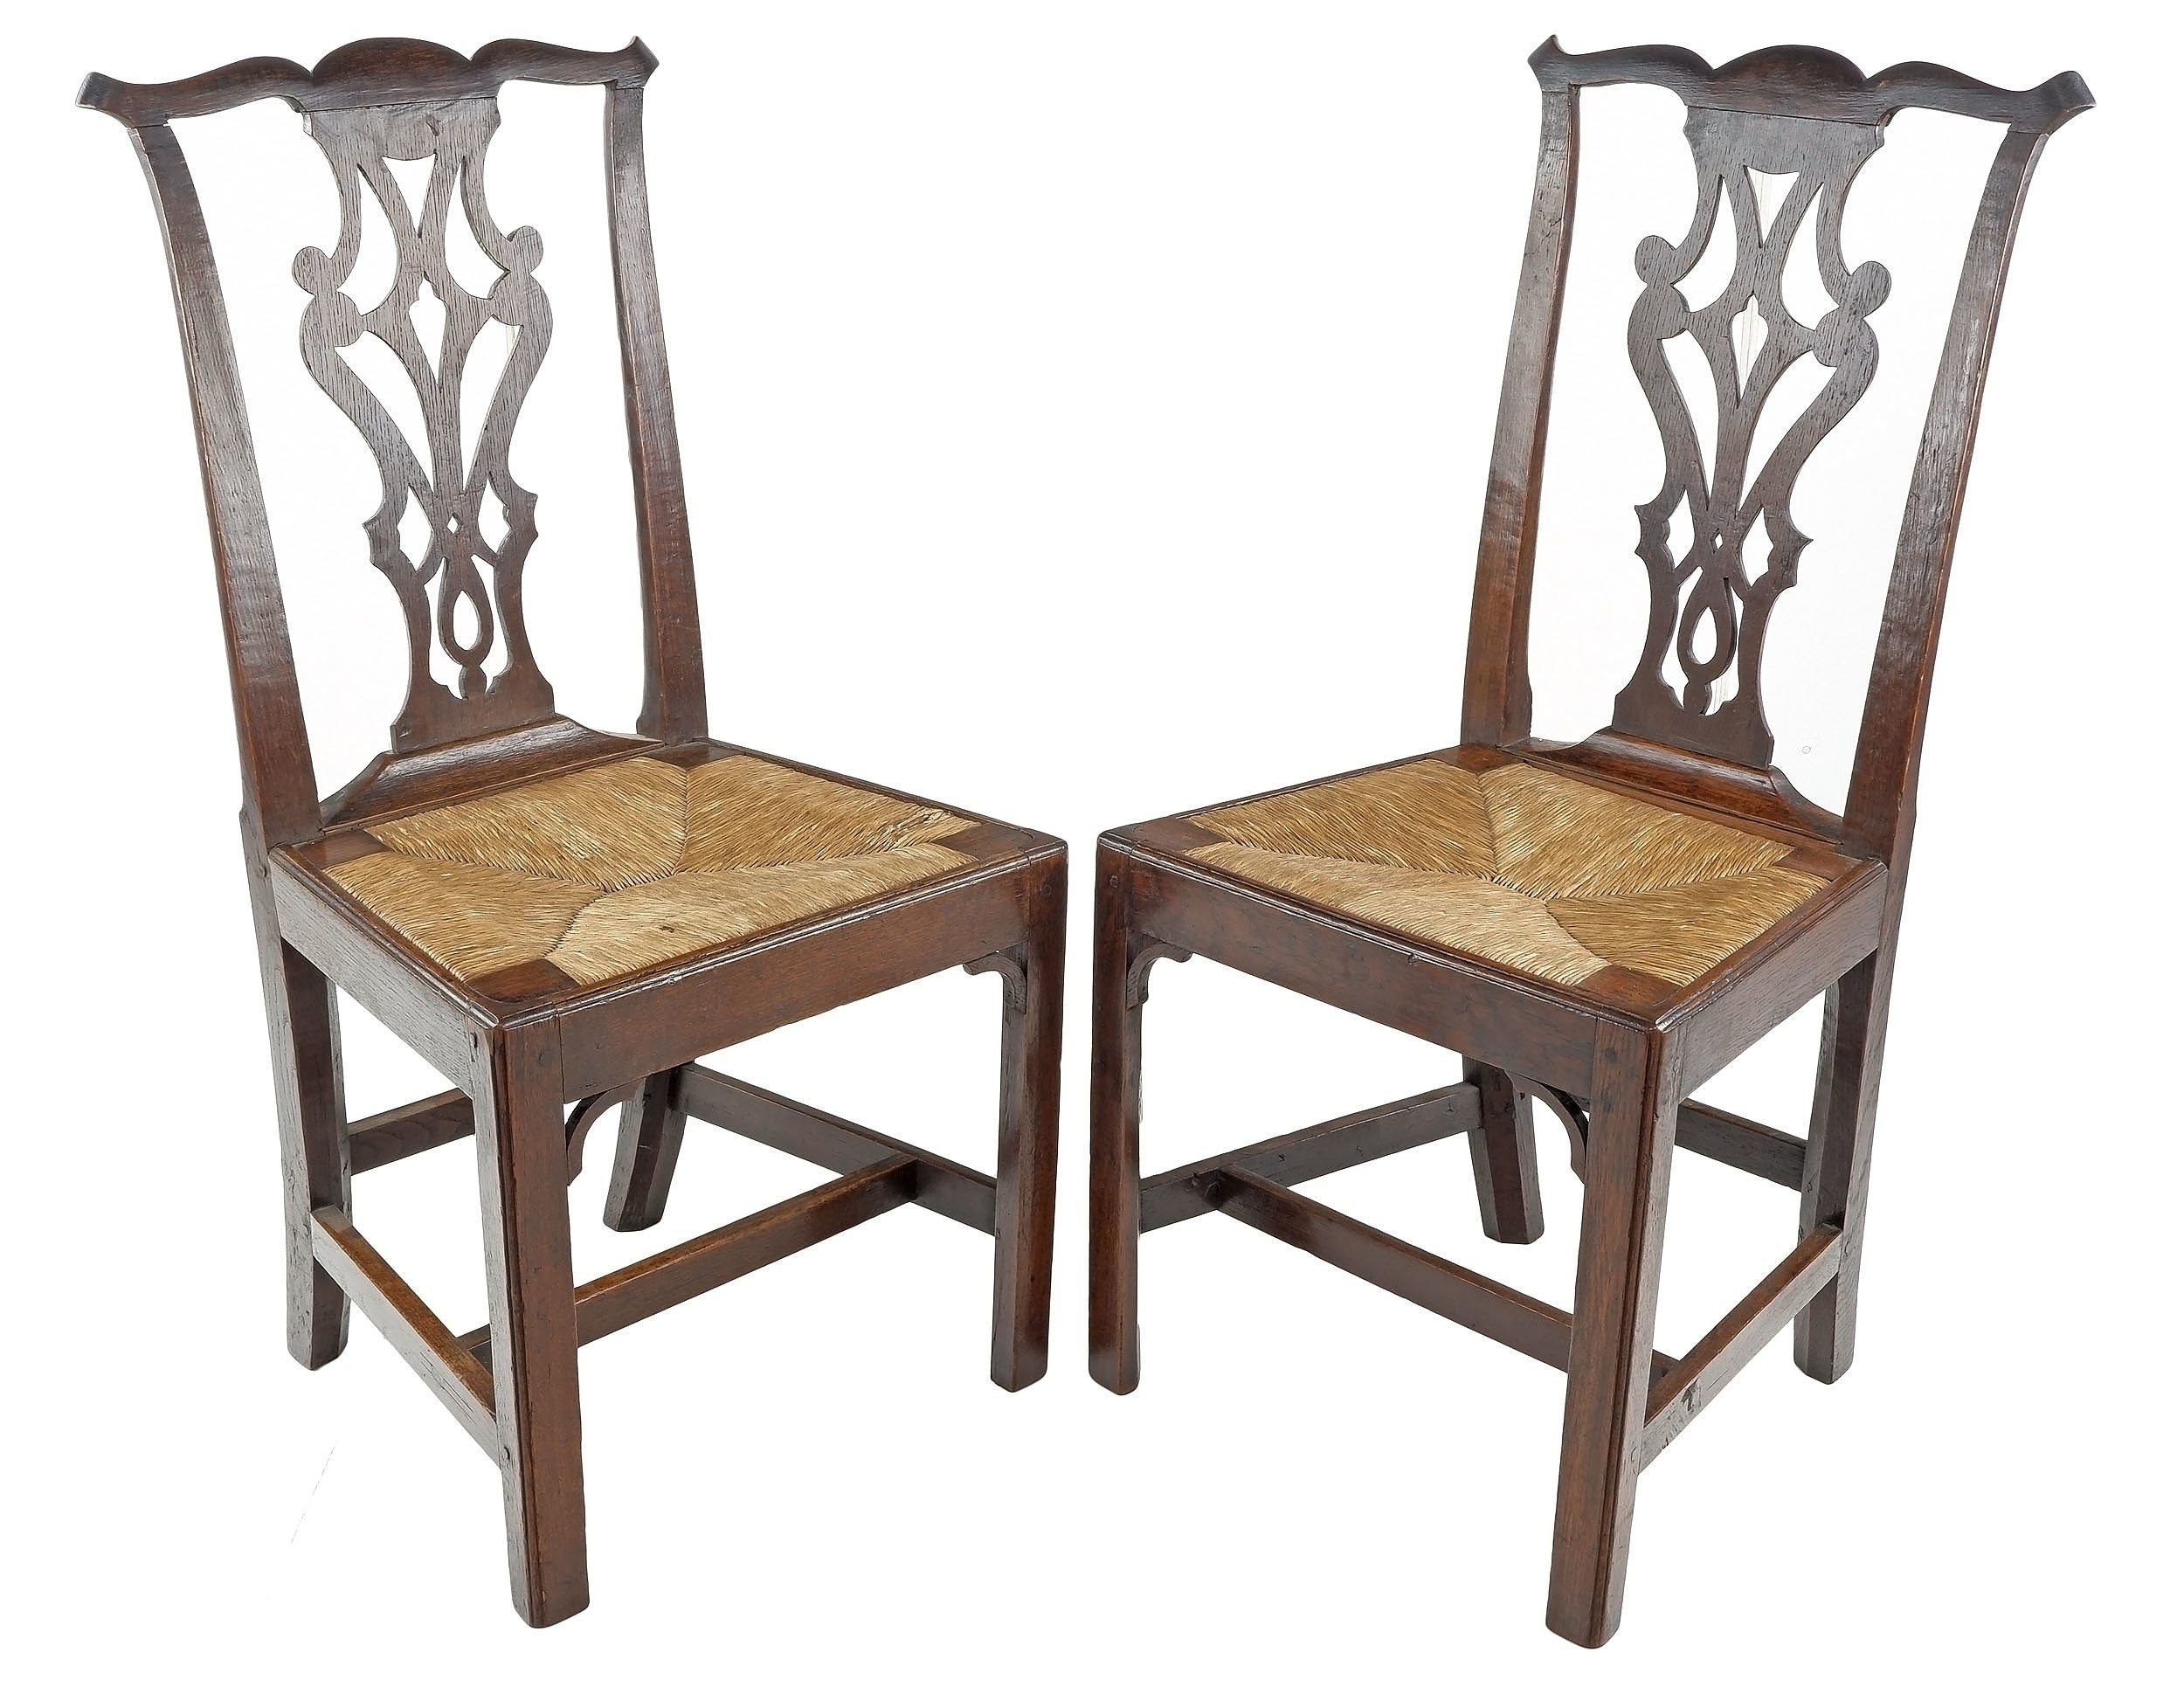 'Pair of Georgian Country Oak Dining Chairs with Drop-in Rush Seats, 19th Century'